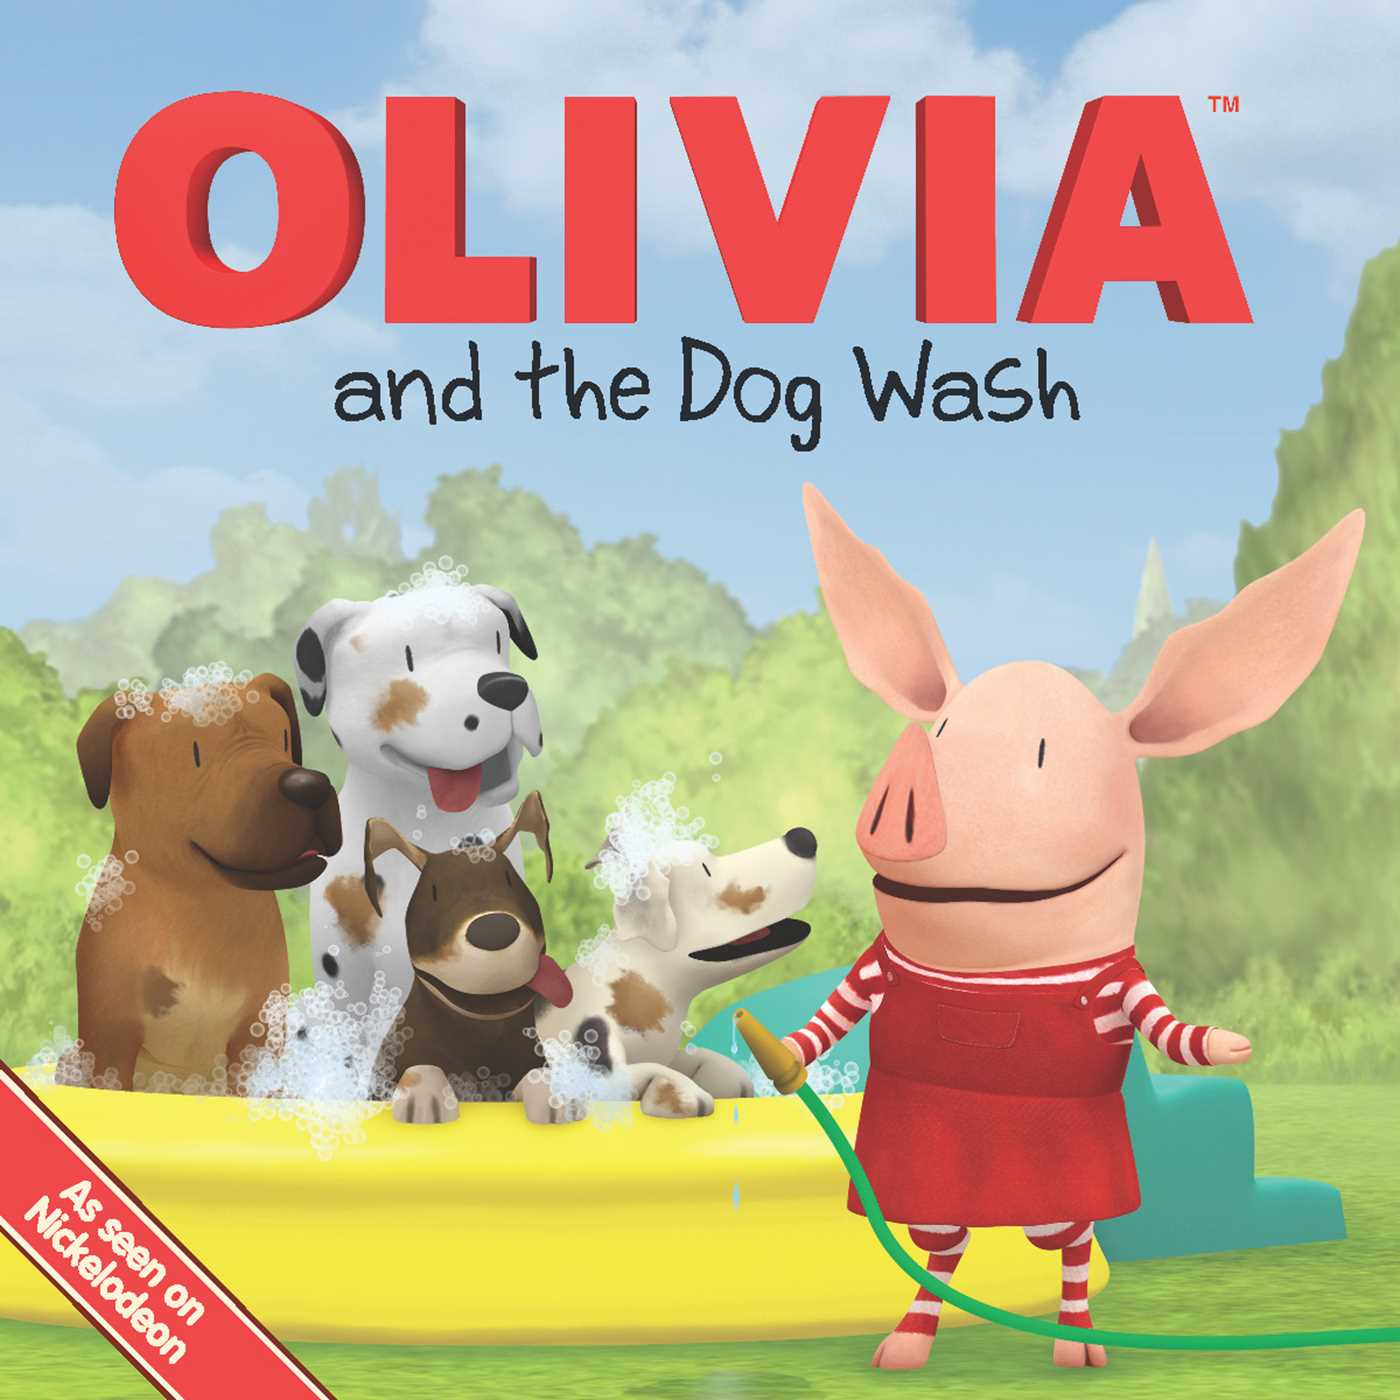 Olivia-and-the-dog-wash-9781442446397_hr